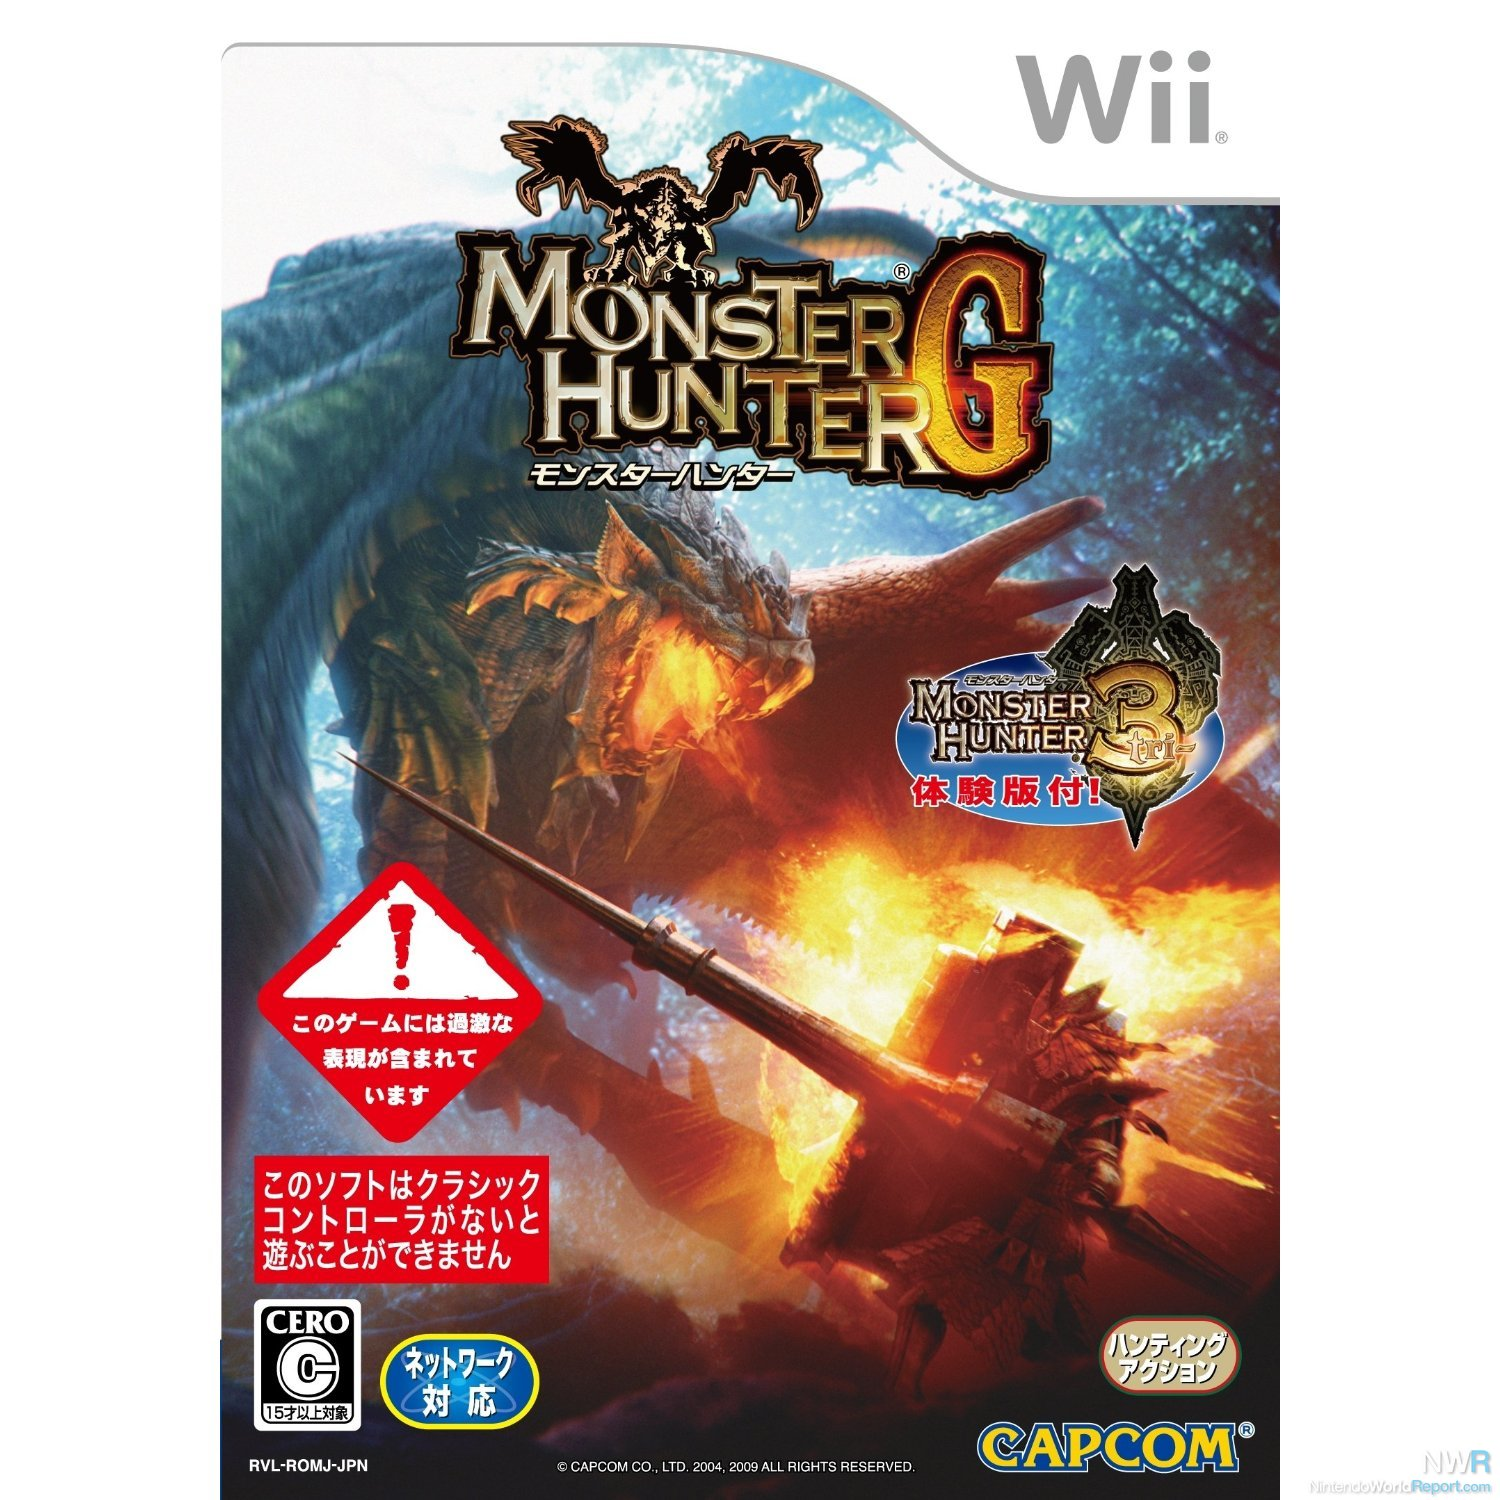 the network mode services for monster hunter g and monster